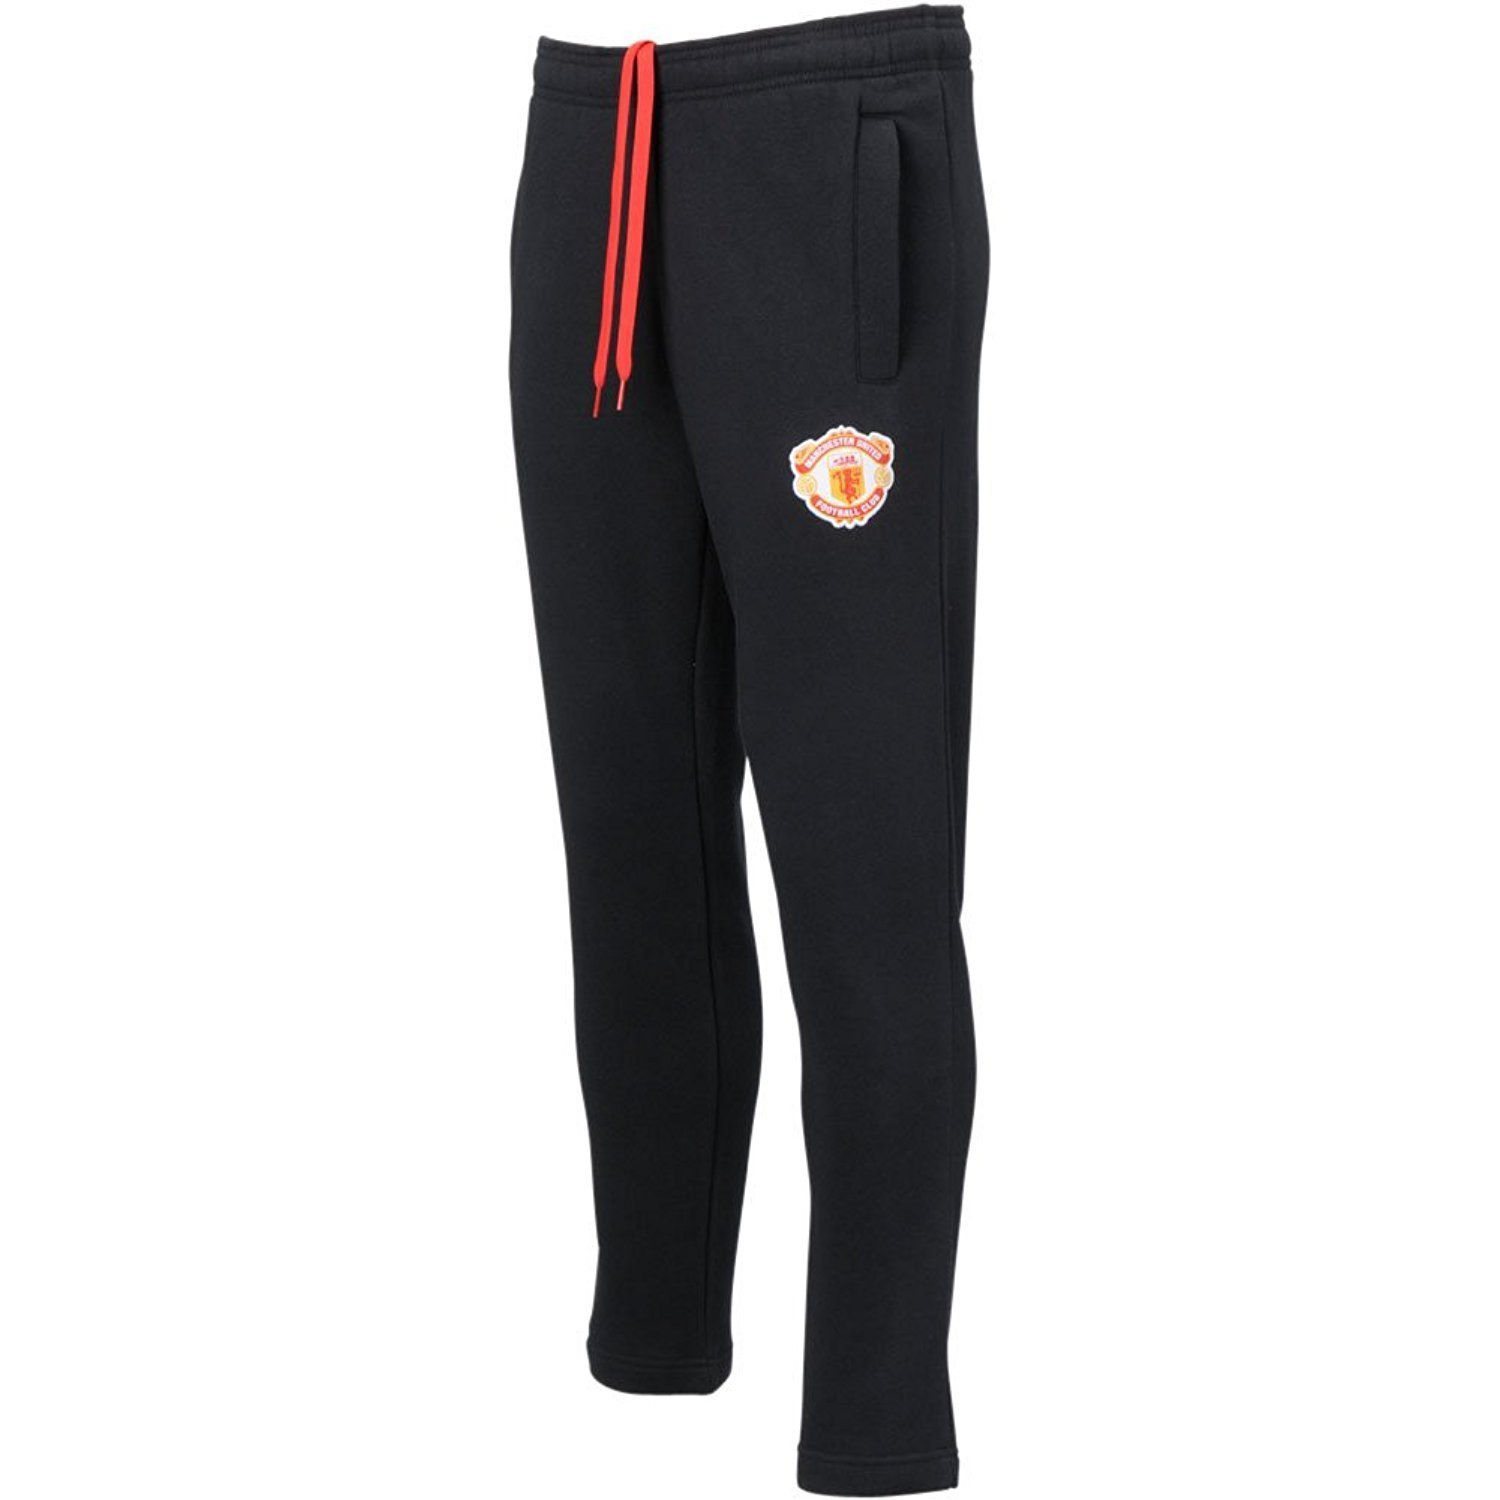 2d7df47fd35 adidas Mens Manchester United Track Pants at Amazon Men's Clothing store: